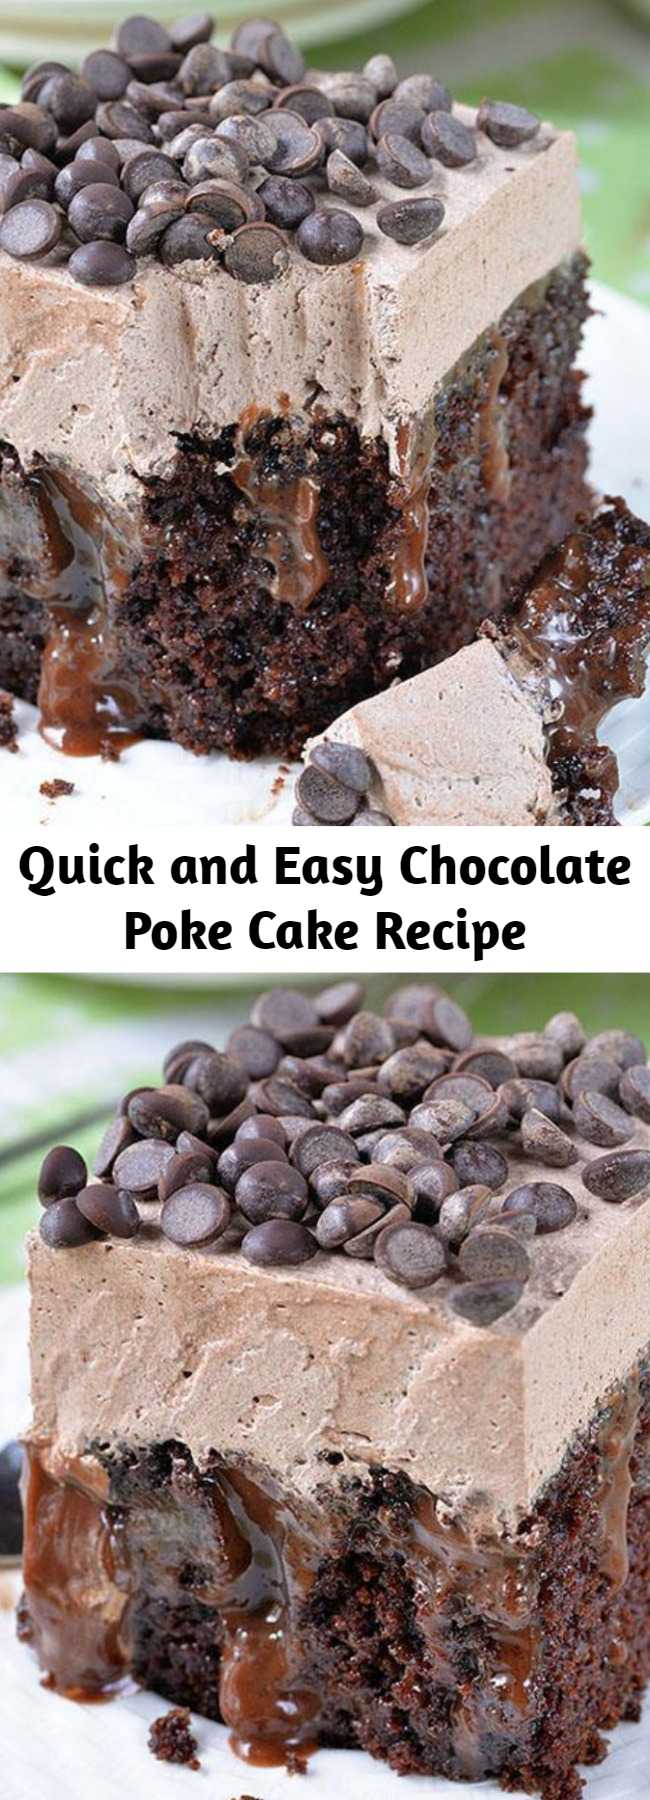 Quick and Easy Chocolate Poke Cake Recipe - Chocolate Poke Cake is quadruple chocolate treat-rich chocolate cake infused with delicious mixture of melted chocolate and sweetened condensed milk, topped with chocolate whipped cream and chocolate chips.